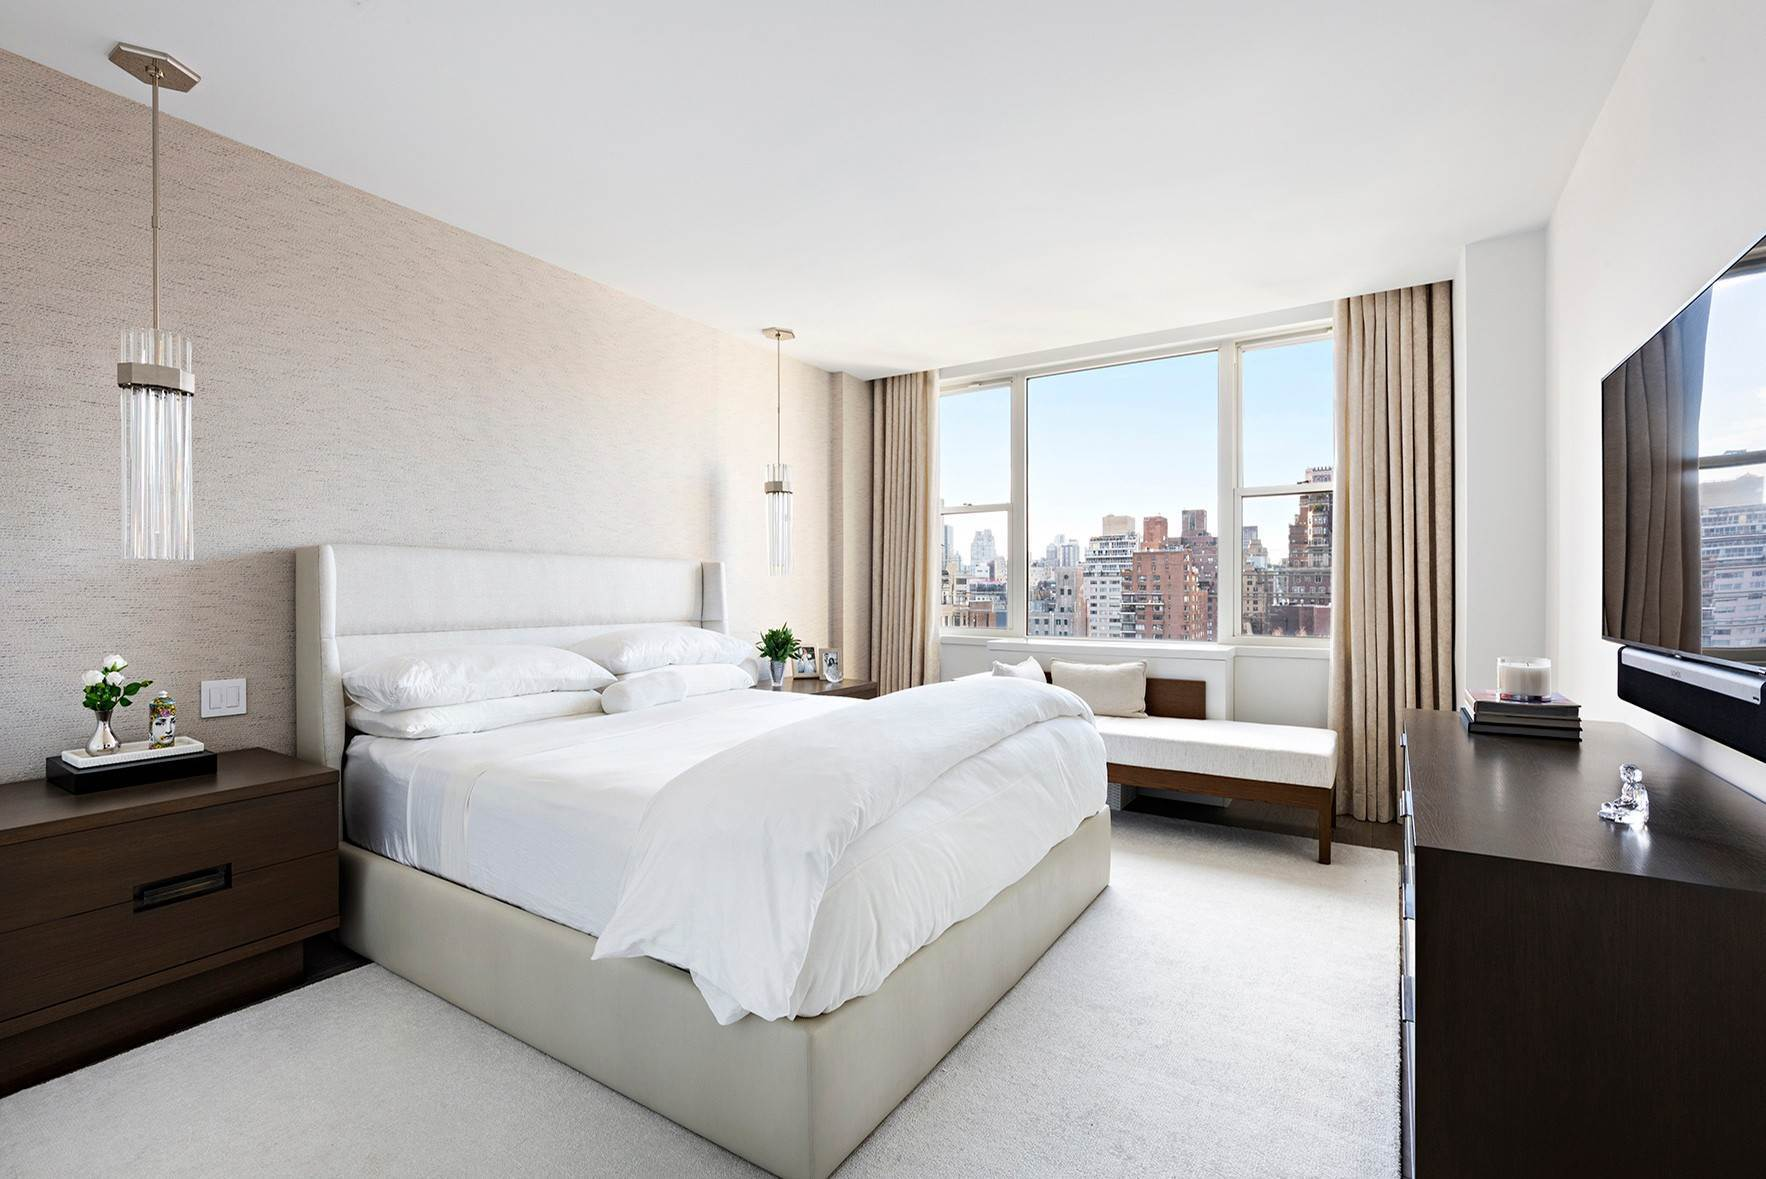 5. Co-op property для того Продажа на Townsend House 176 East 71st Street, 16F New York, Нью-Йорк,10021 Соединенные Штаты